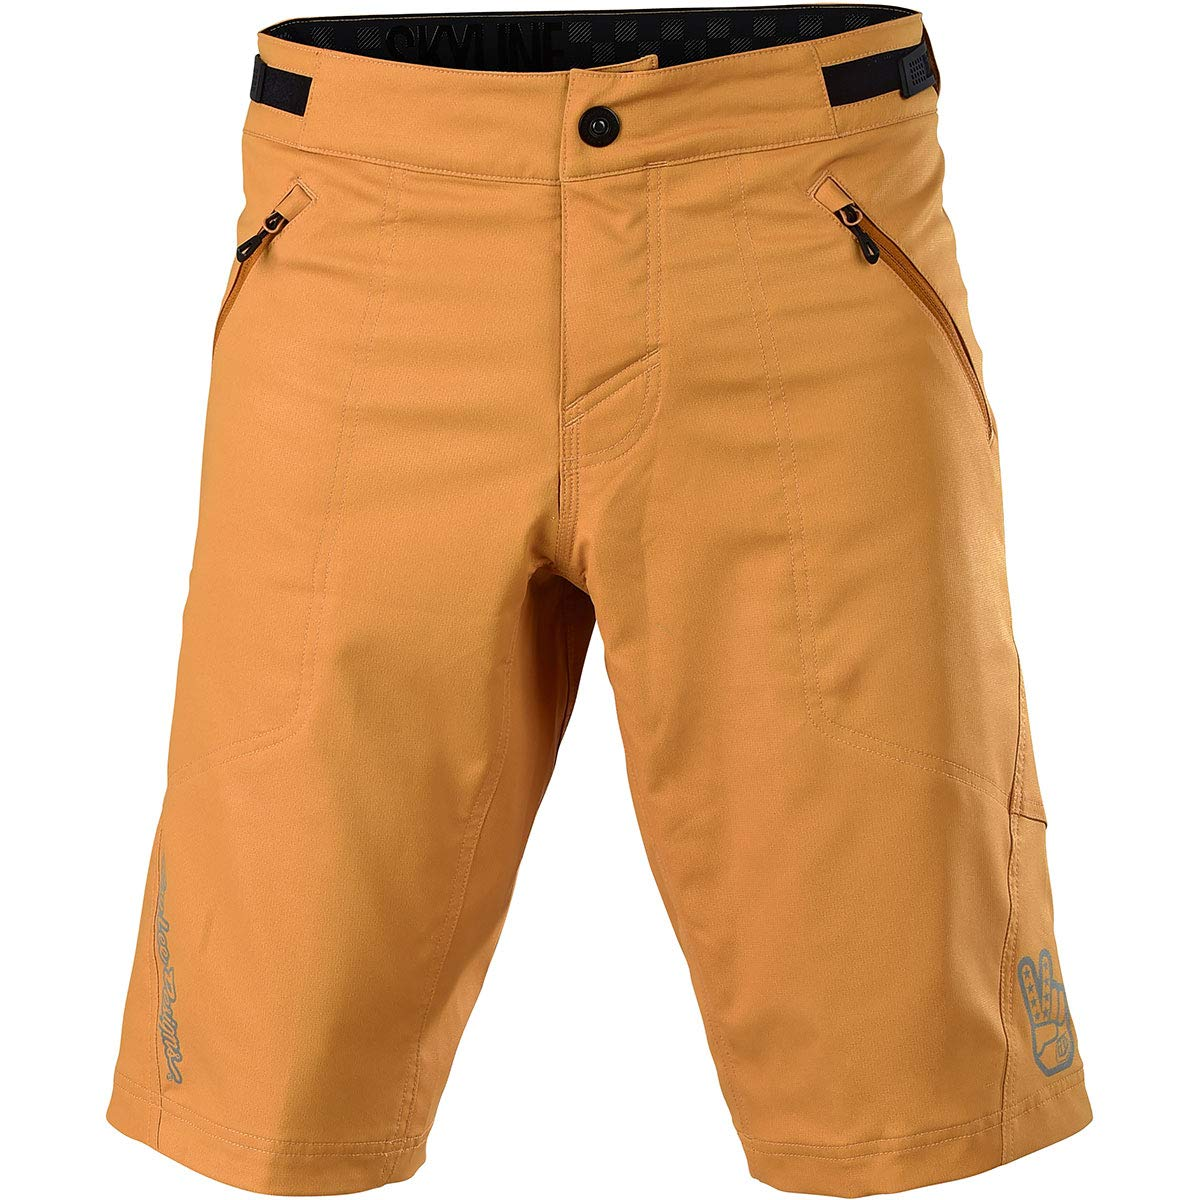 Troy Lee Designs Skyline Short - Men's Bourbon, 34 by Troy Lee Designs